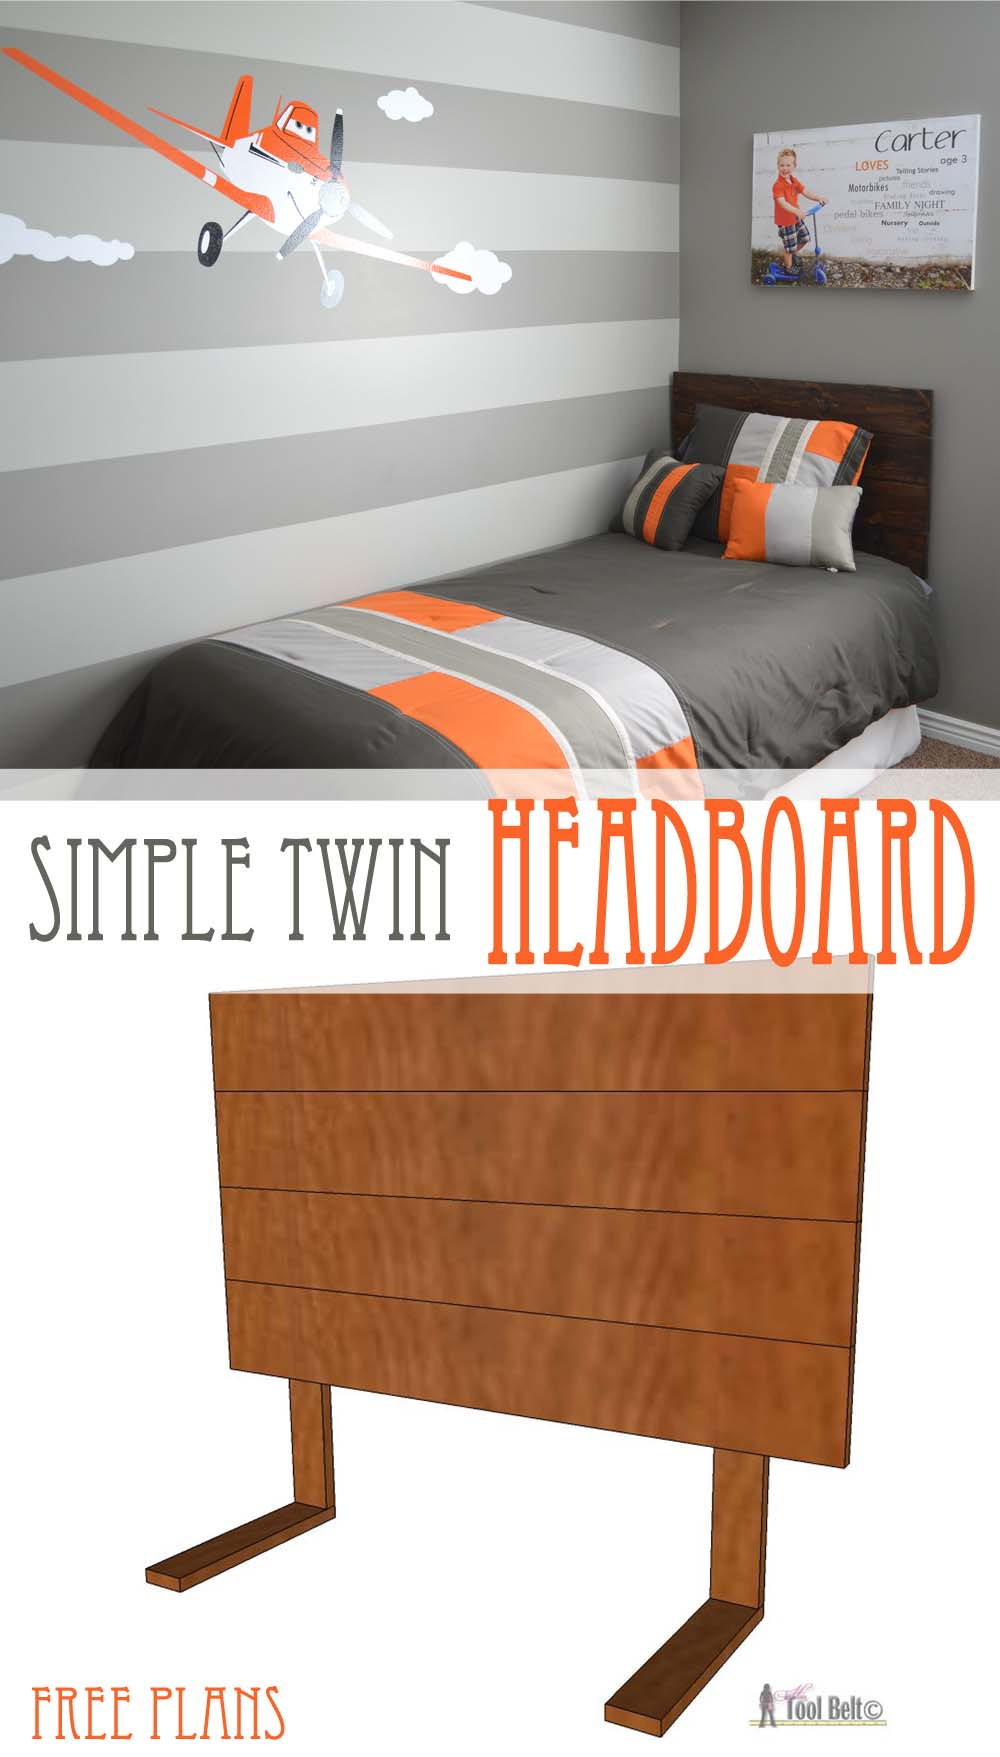 Boys Headboard Cheaper Than Retail Price Buy Clothing Accessories And Lifestyle Products For Women Men